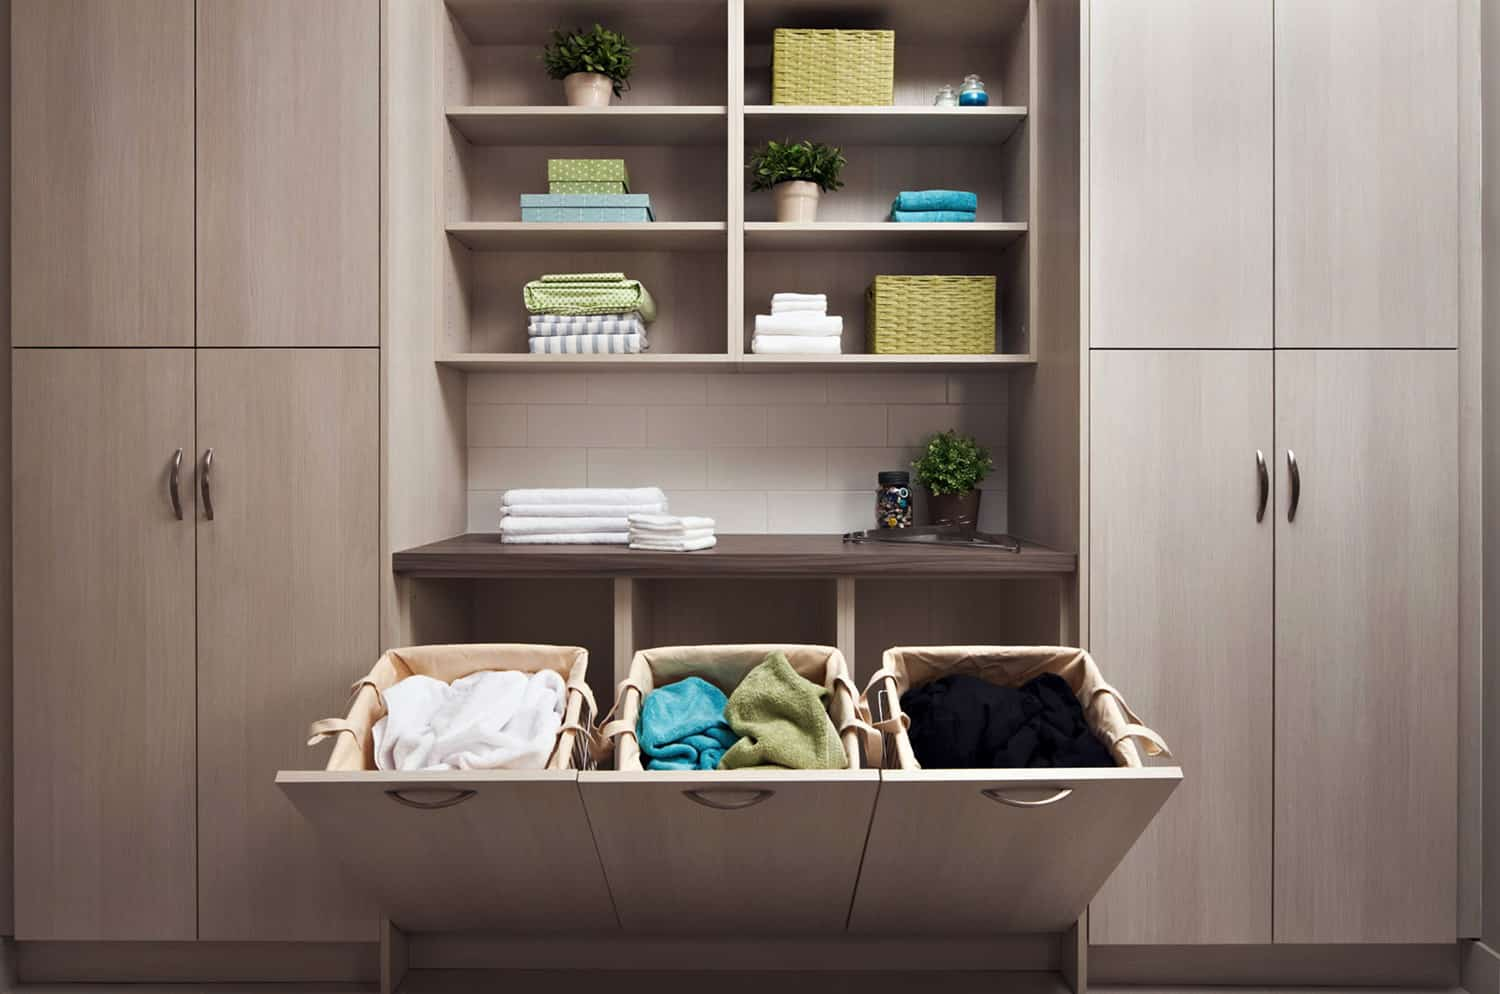 built-in-laundry-hampers